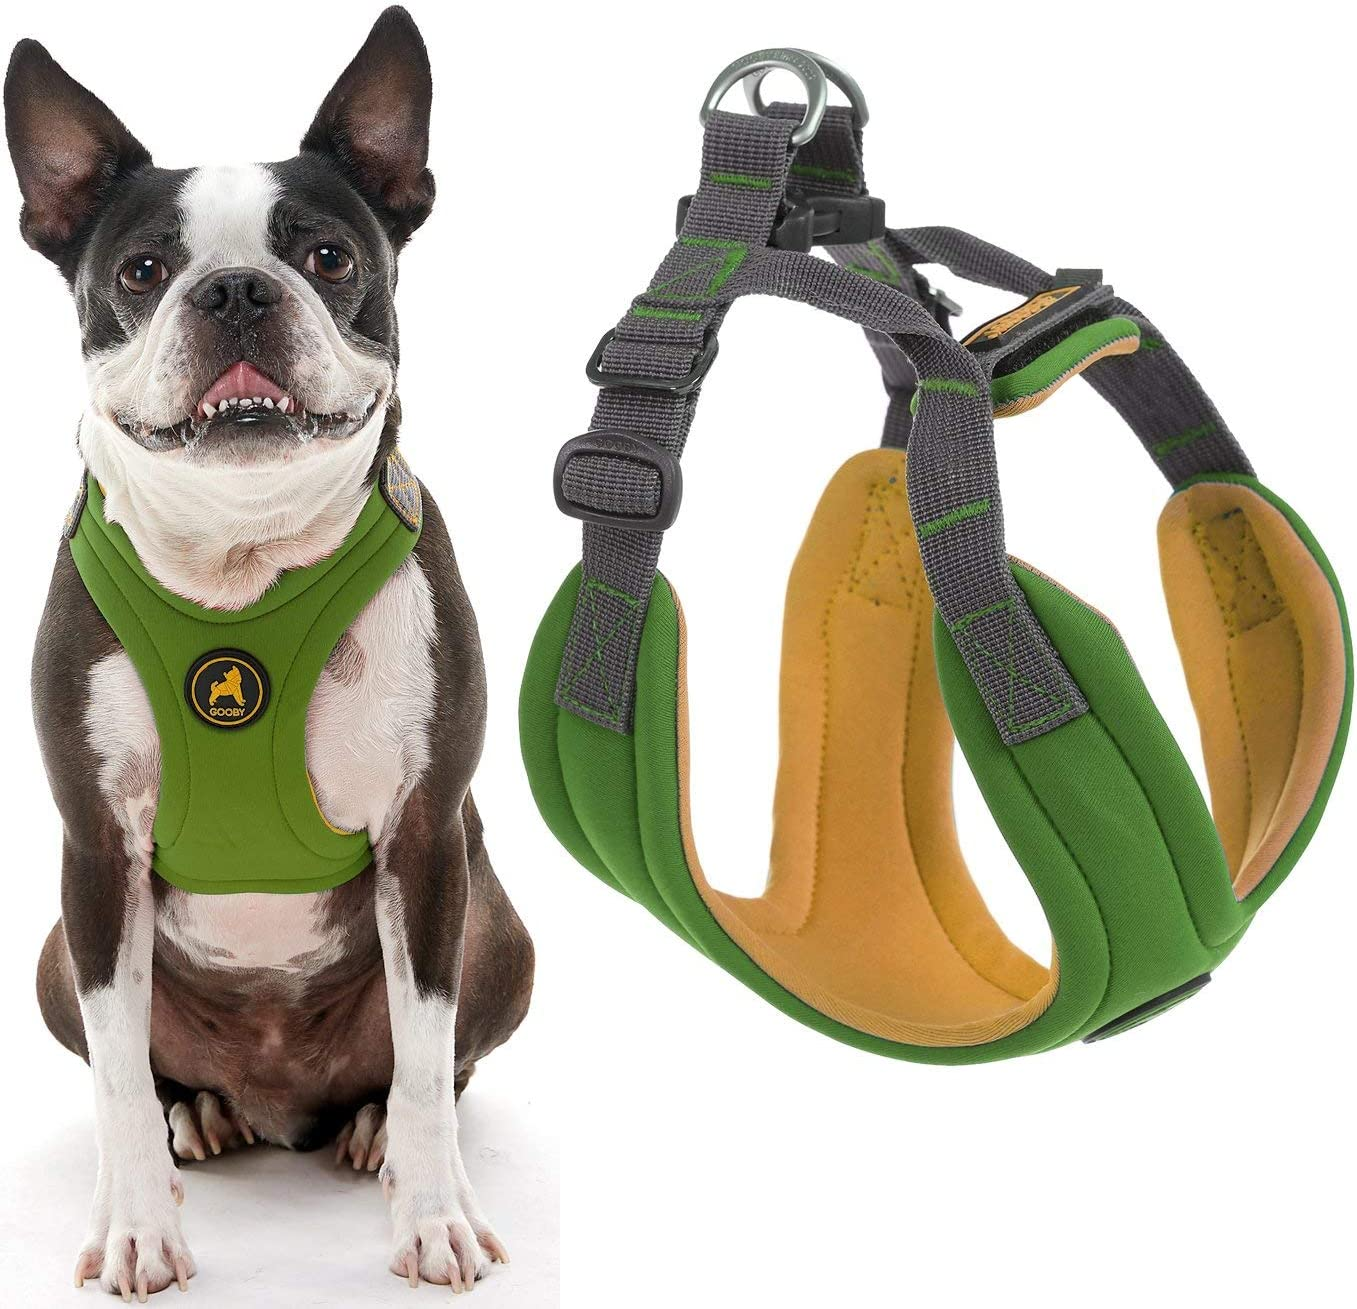 Small Dog Step In Neoprene Harness with Easy Neck Fastener Convertible Harness Medium Turquoise Gooby